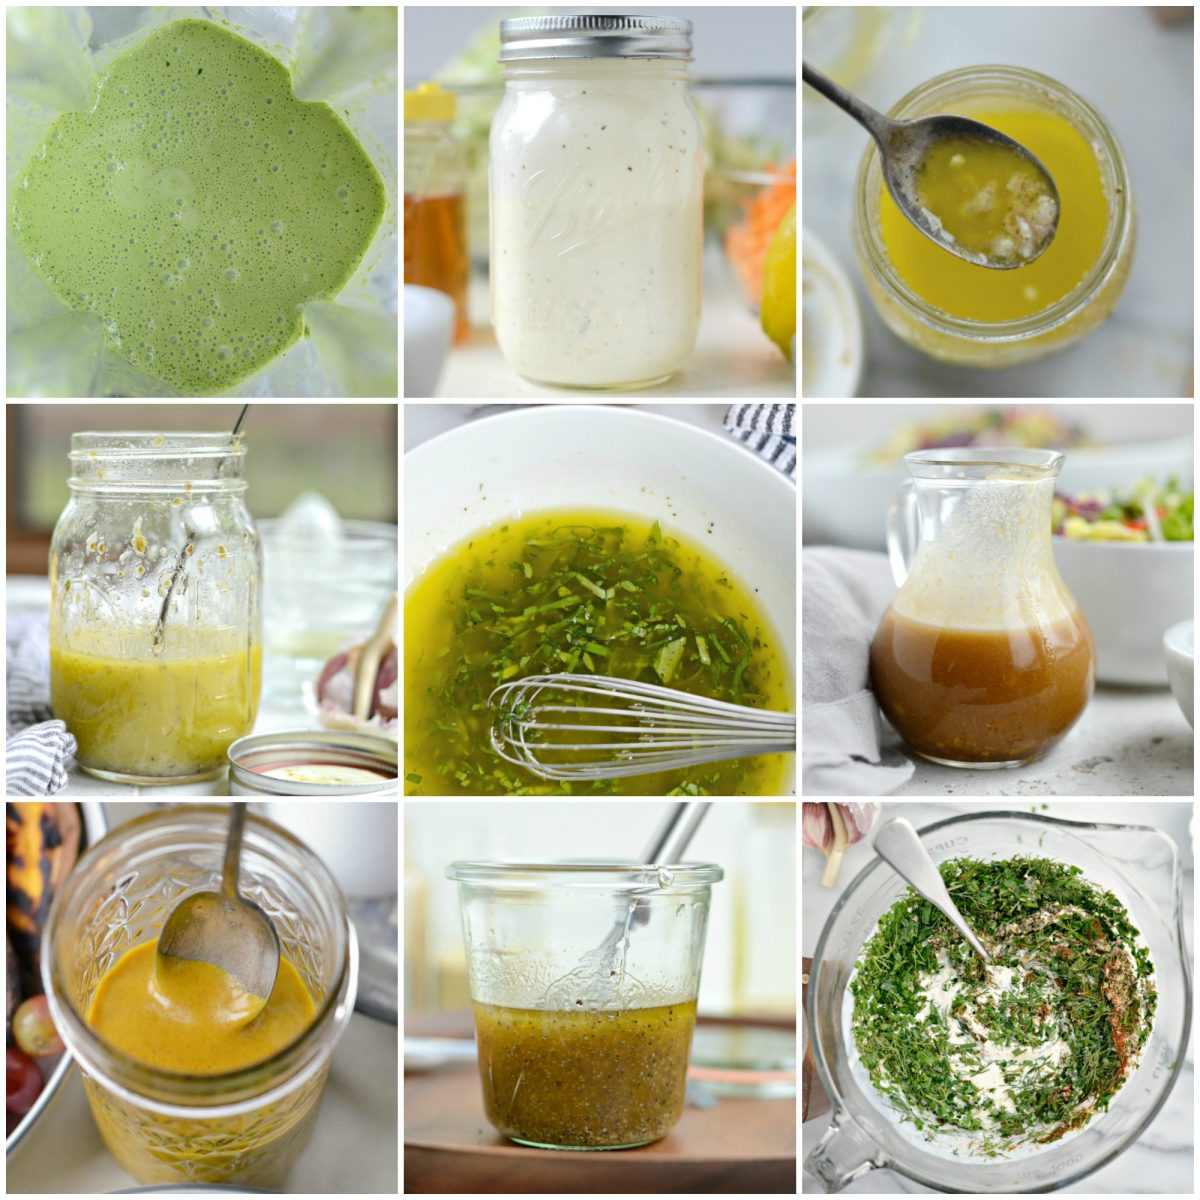 50+ Homemade Salad Dressings and Vinaigrette Recipes